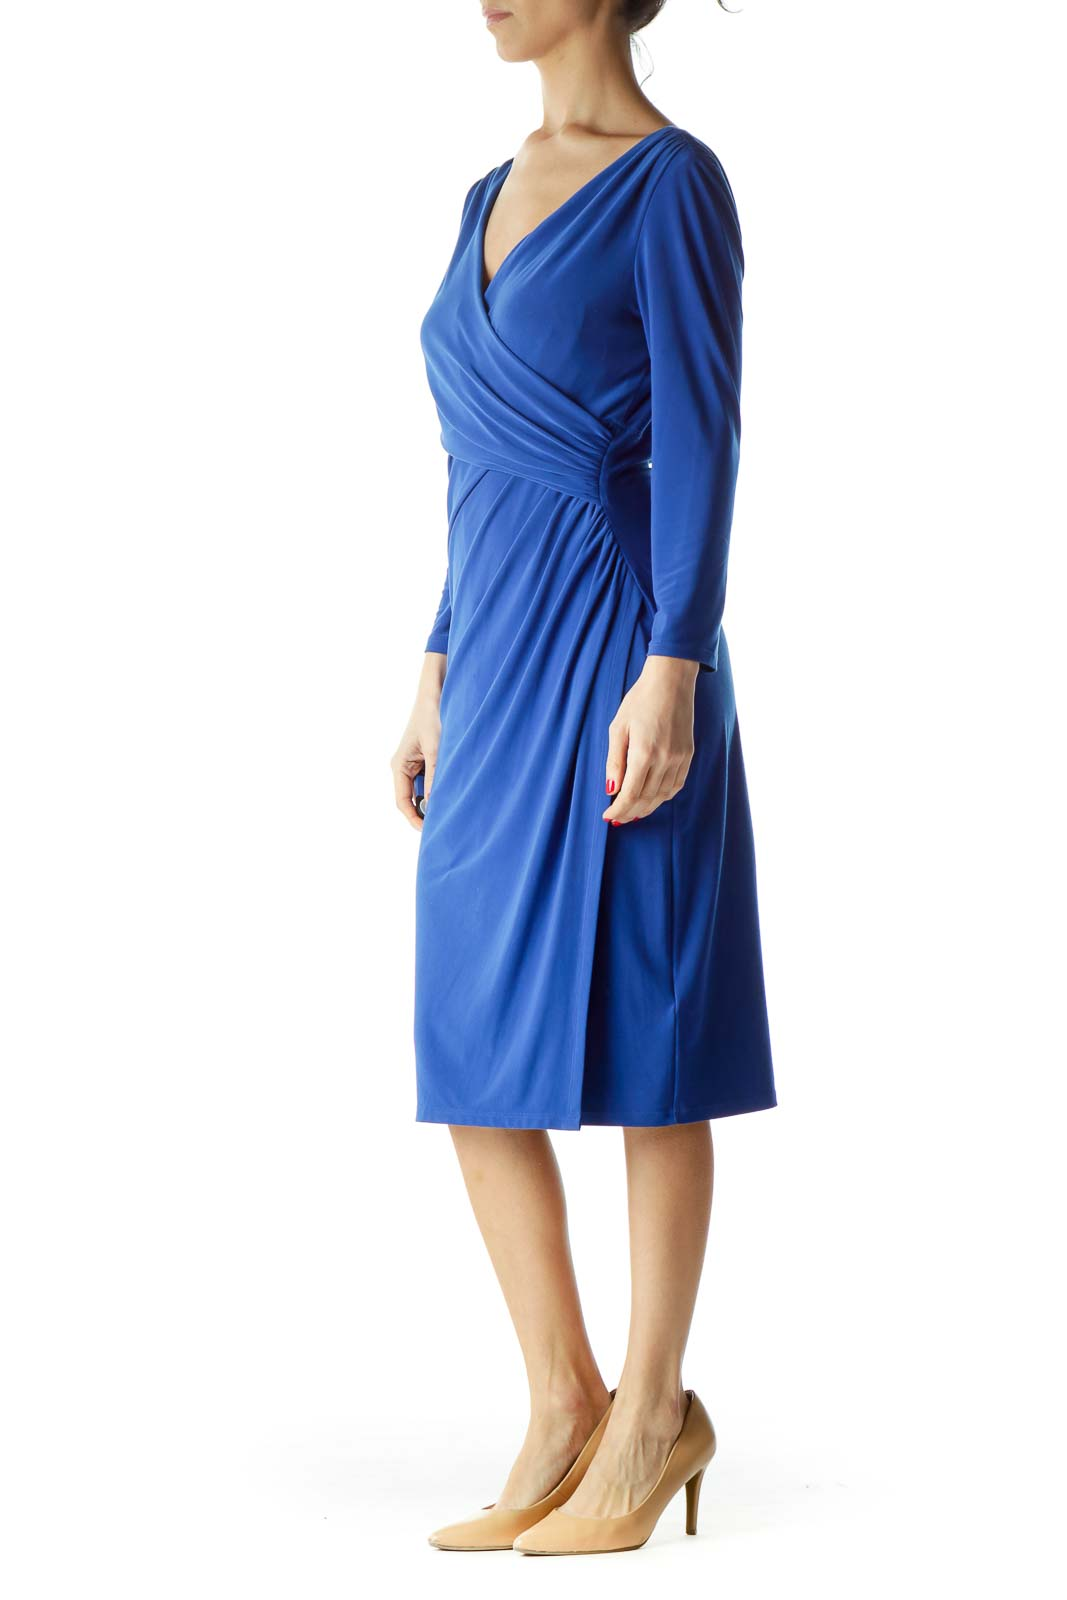 Blue Ruched 3/4 Sleeve Dress